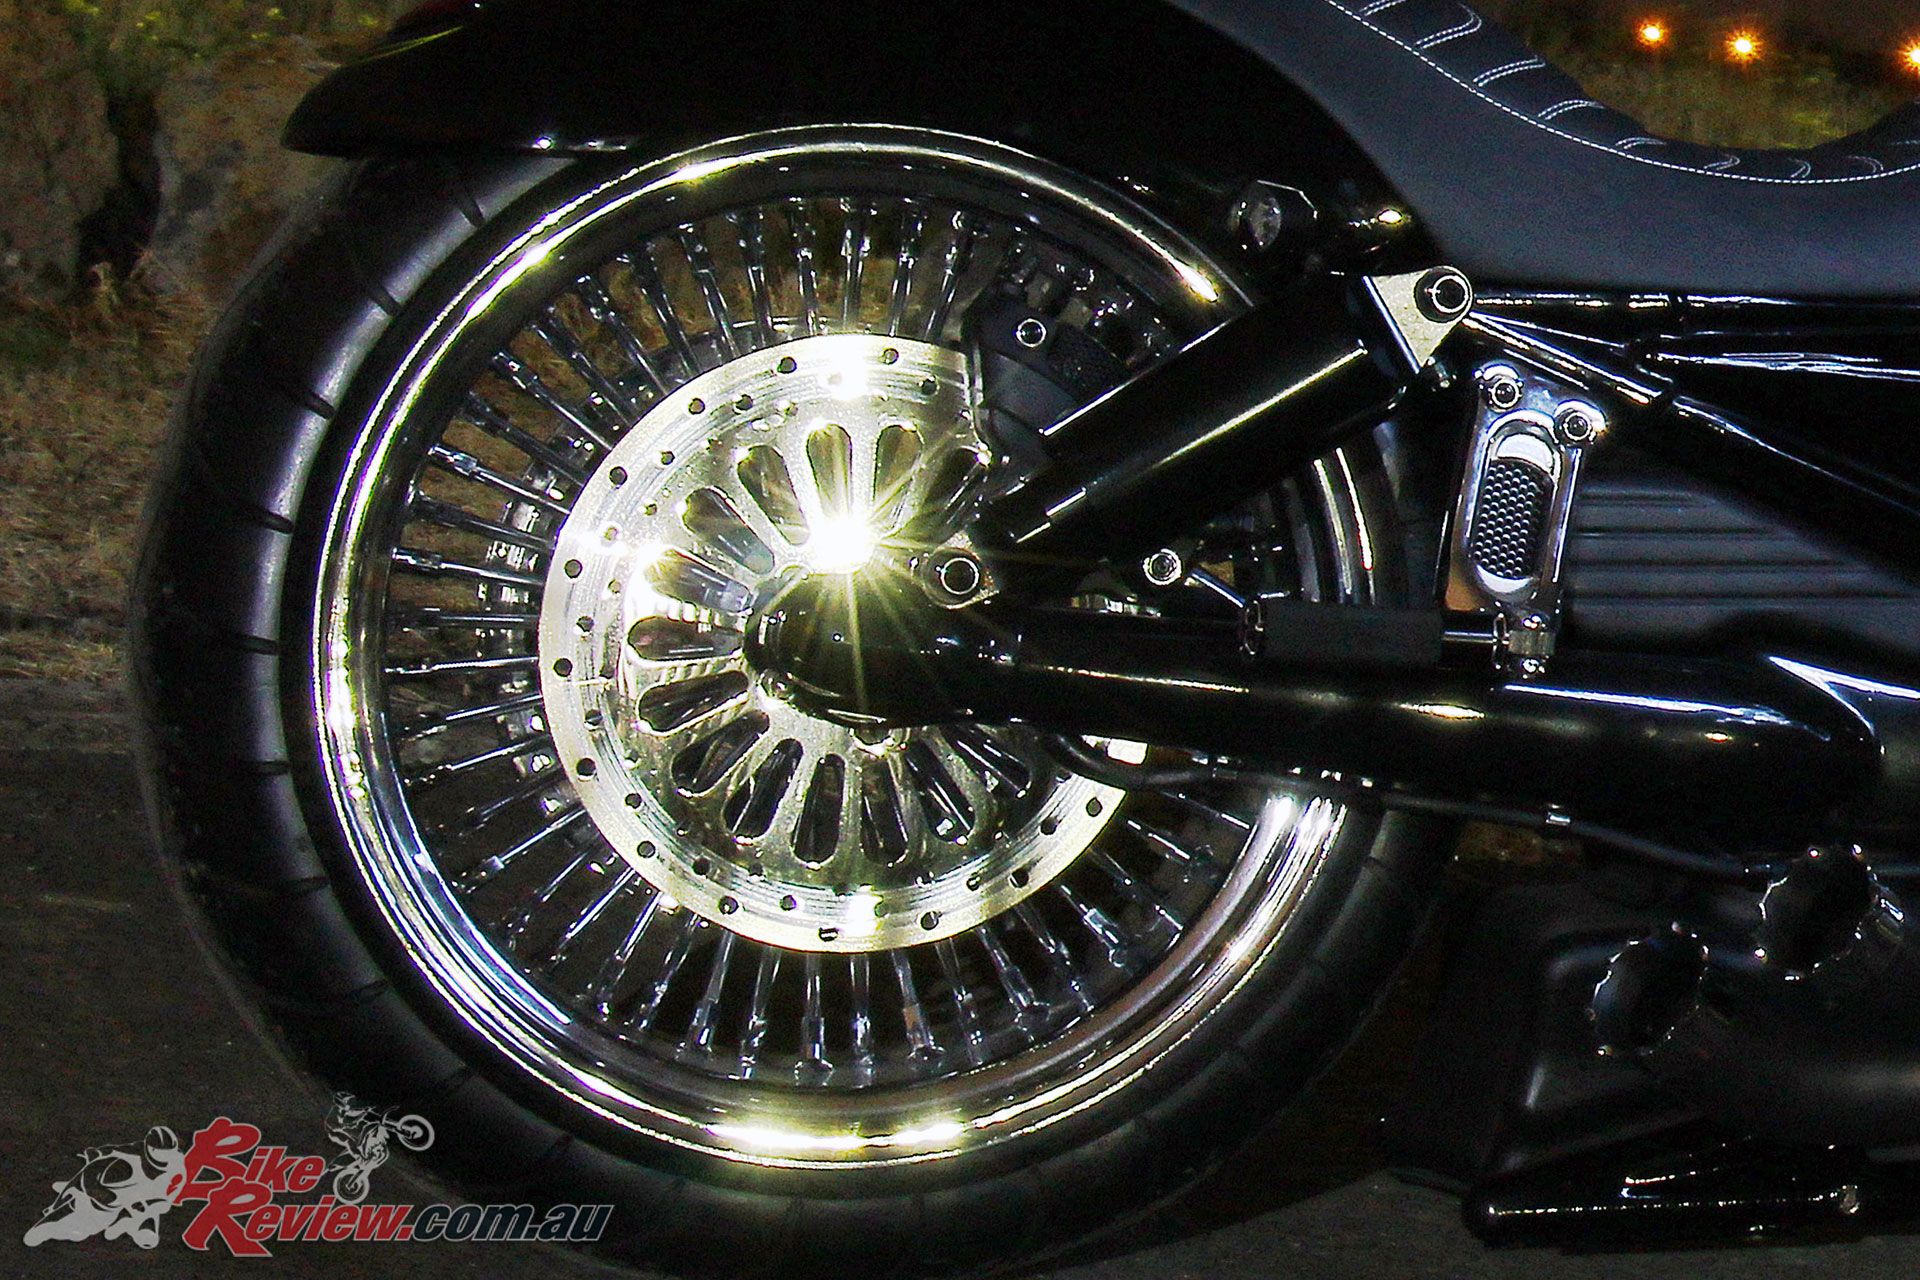 Big Daddy Fat Spoke wheels in 3.50 x 26in front and 8.50 x 18in